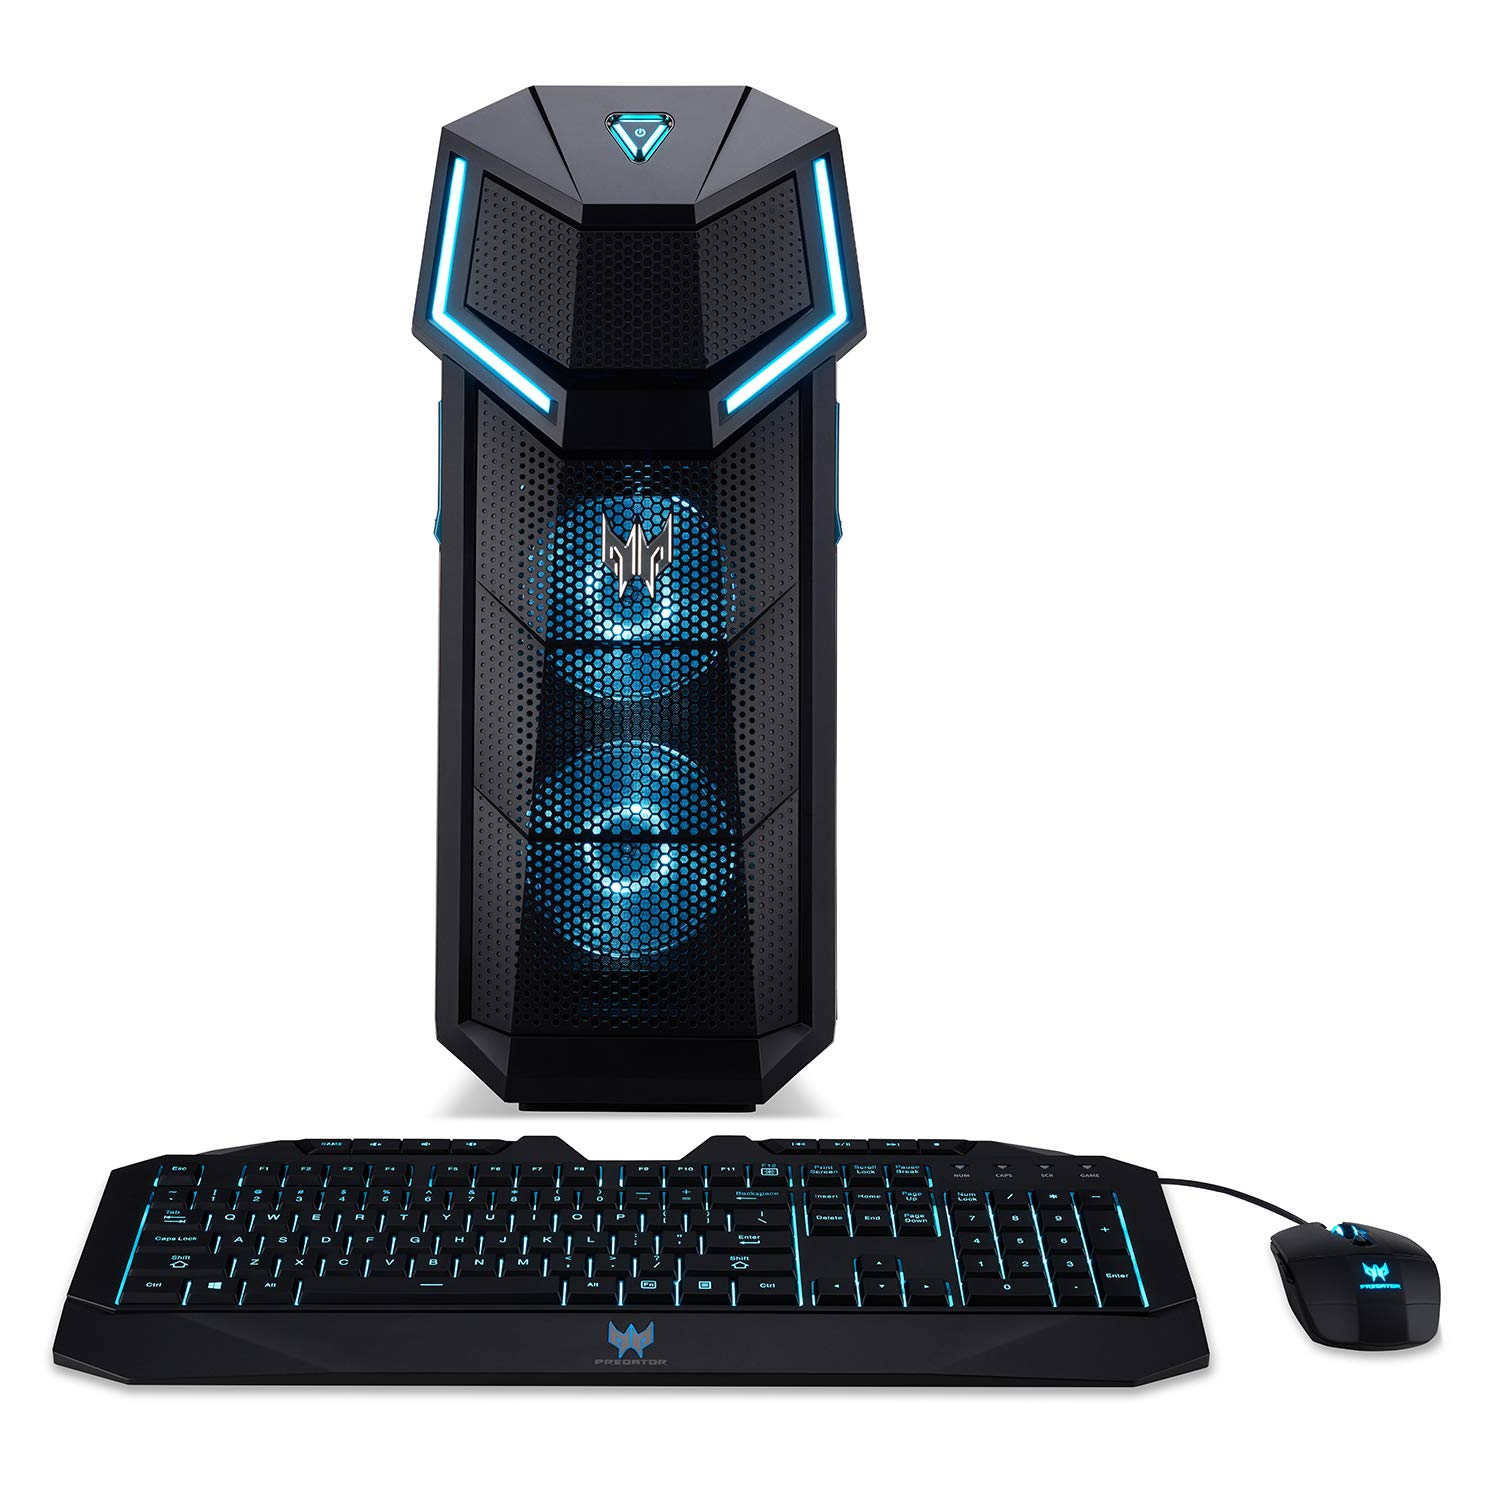 Acer Predator Orion 5000 PO5-610-UR11 Gaming Desktop,8th Gen Intel Core i5-8600K, GeForce GTX 1060, 16GB DDR4, 256GB PCIe NVMe SSD, Windows 10 Home